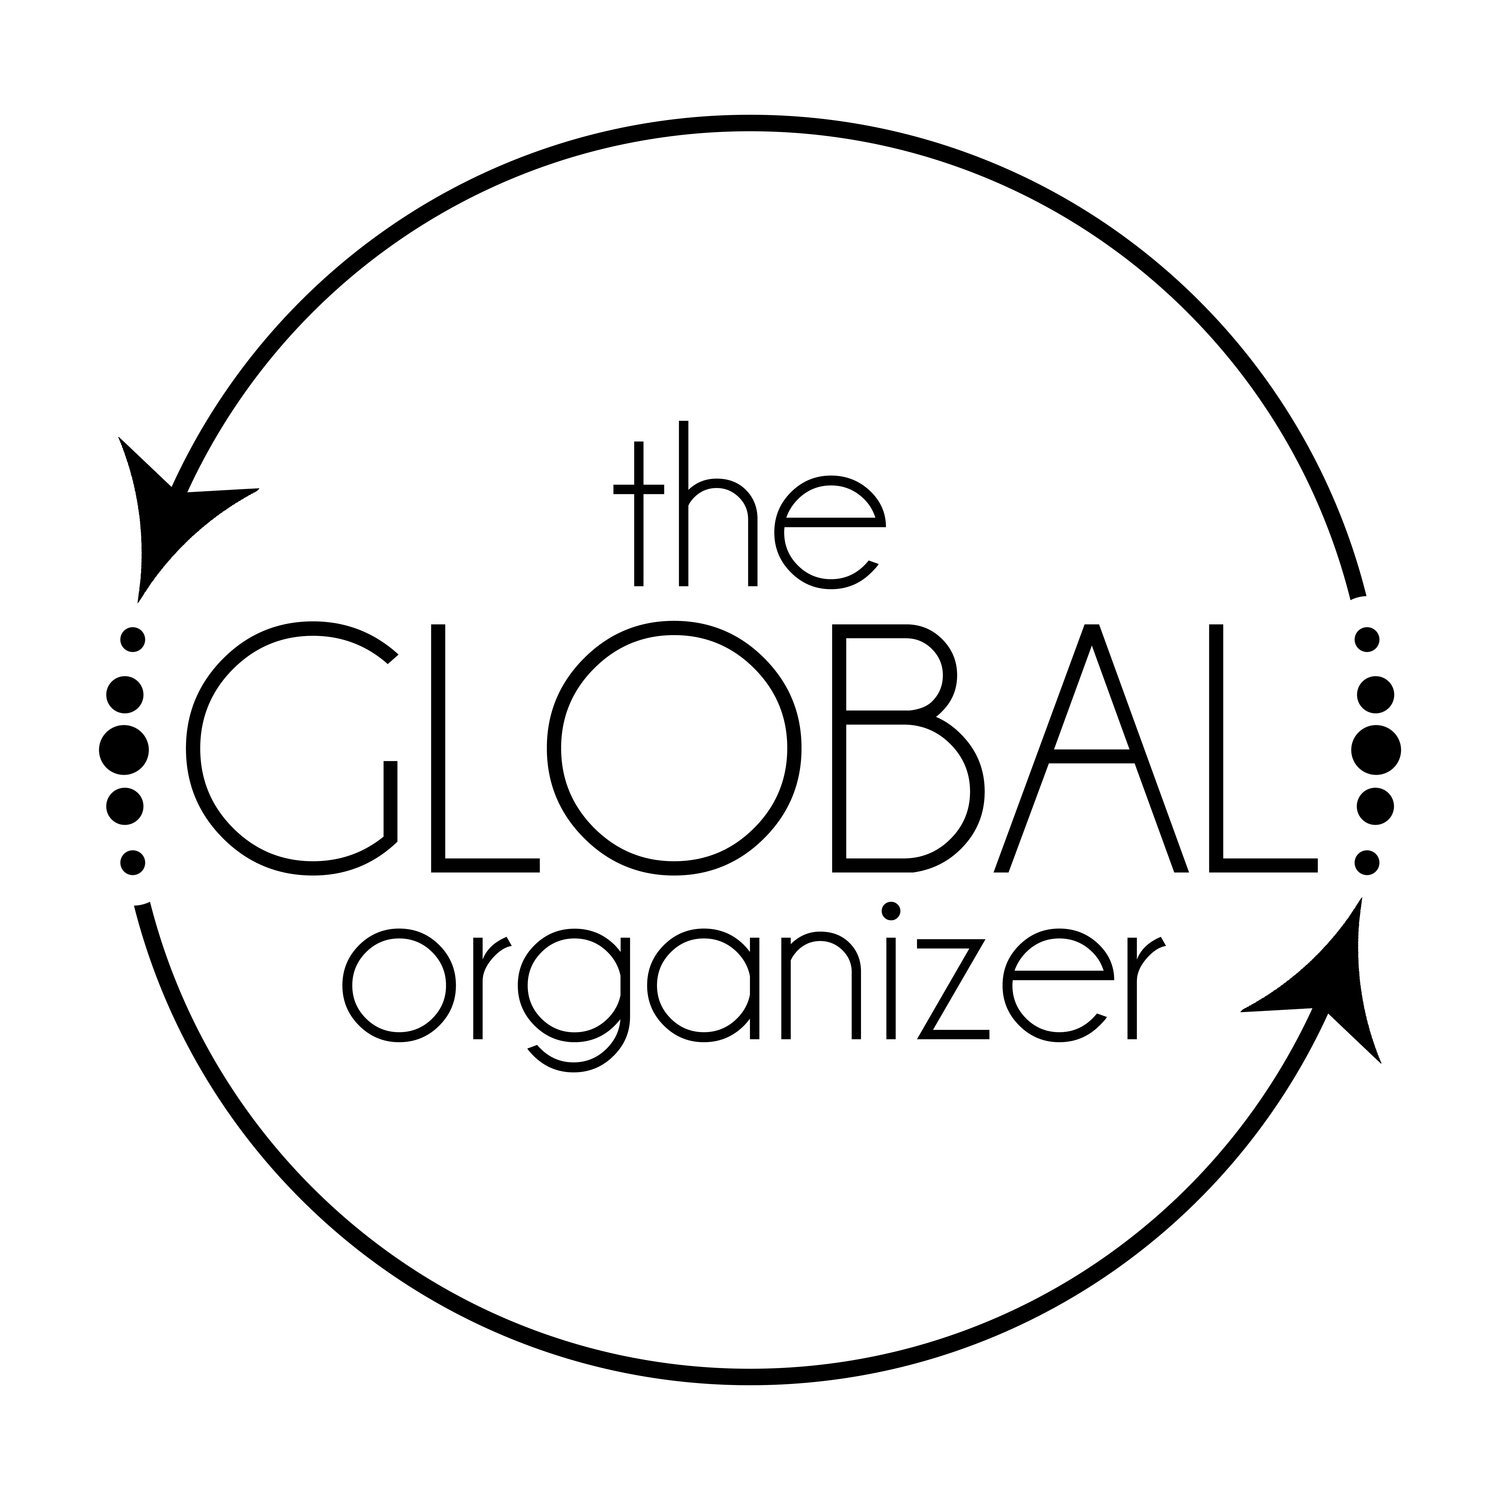 THE GLOBAL ORGANIZER